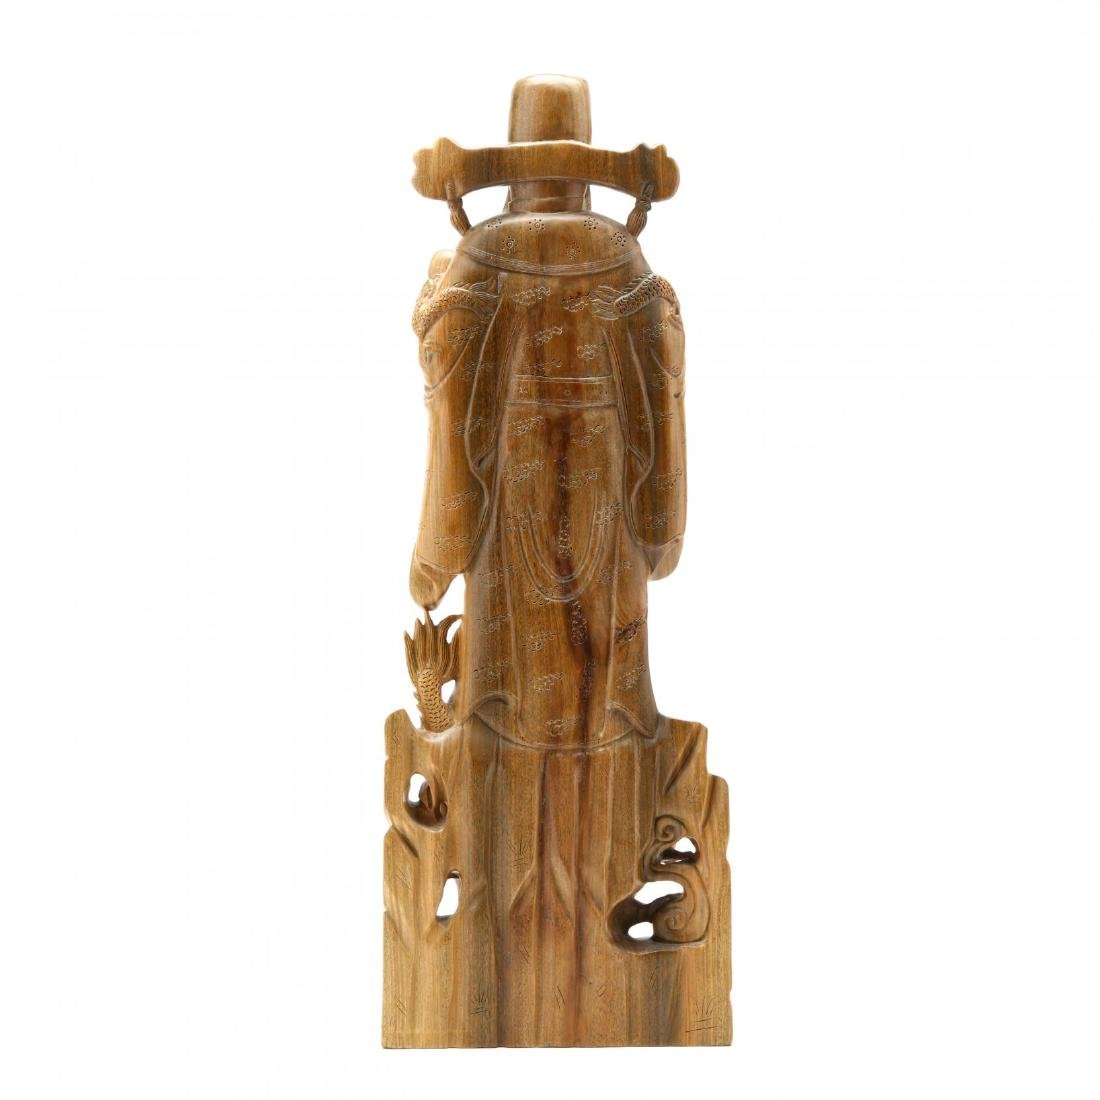 Chinese Carved Wooden Guardian Figure or Official - 4